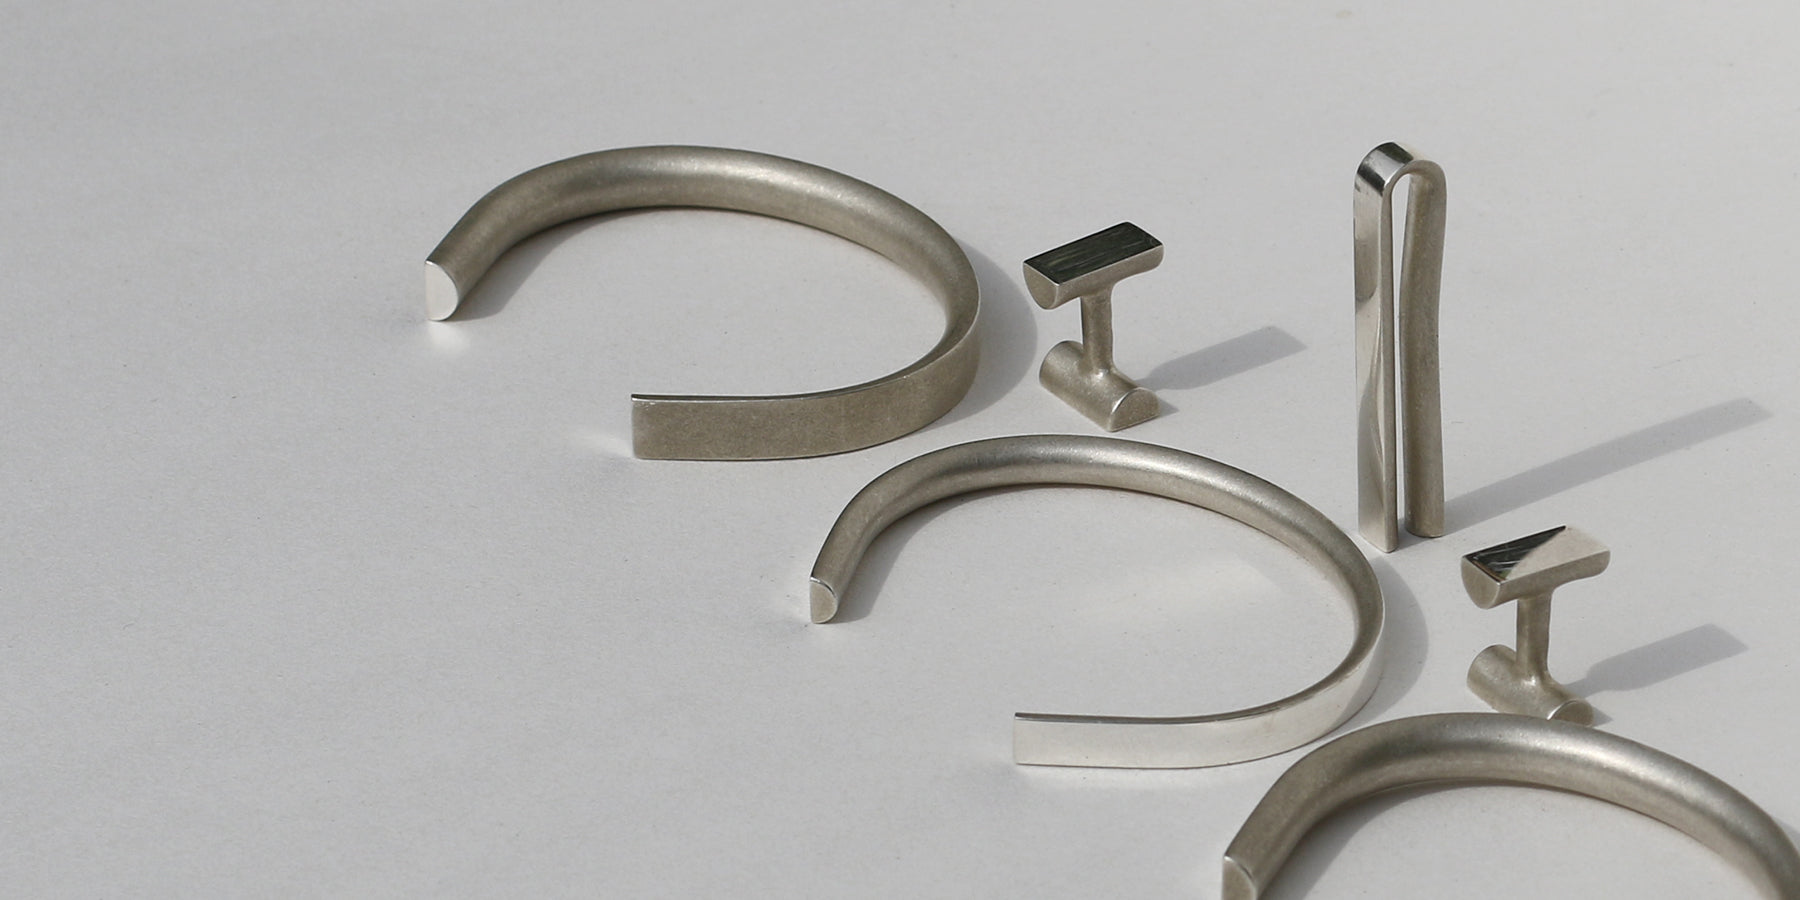 Solid silver cufflinks | Alice Made This